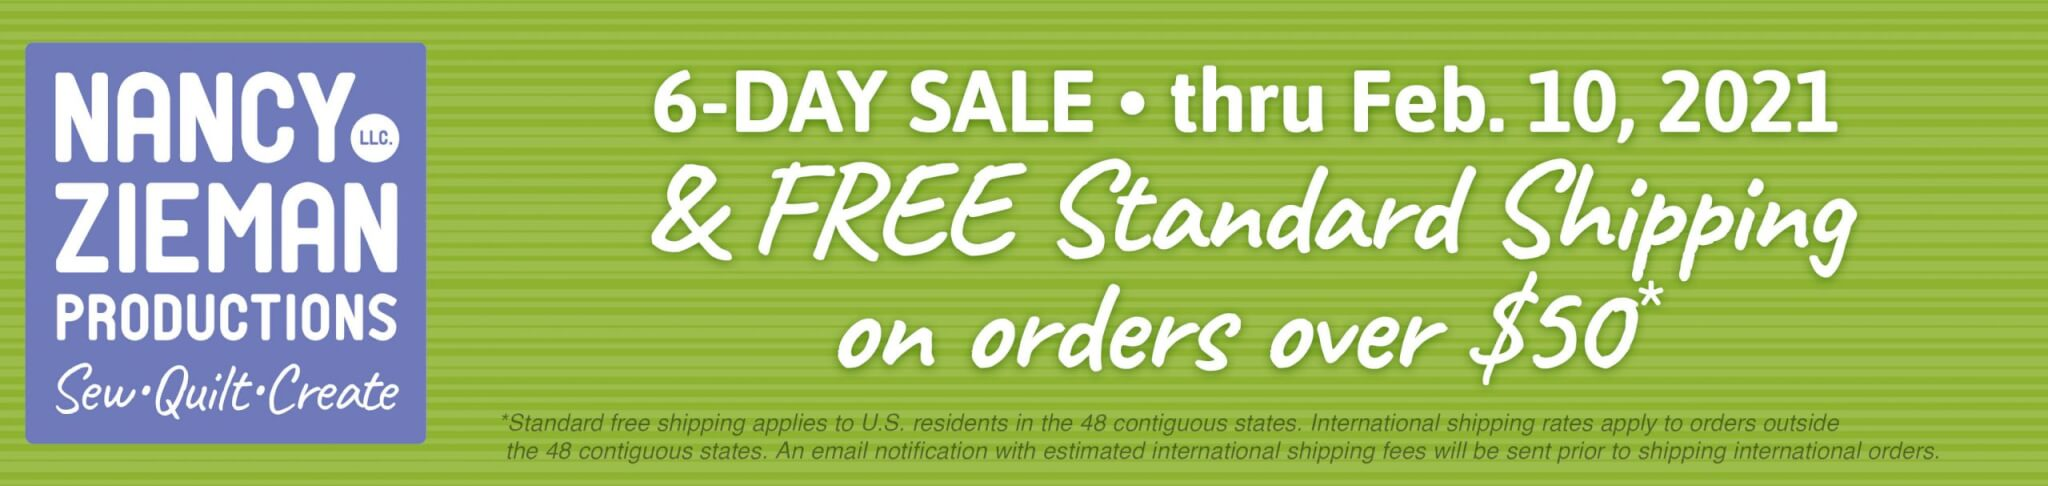 ShopNZP 6-Day Sale & FREE Standard Shipping on orders over $50 through Feb. 10, 2021 at ShopNZP.com